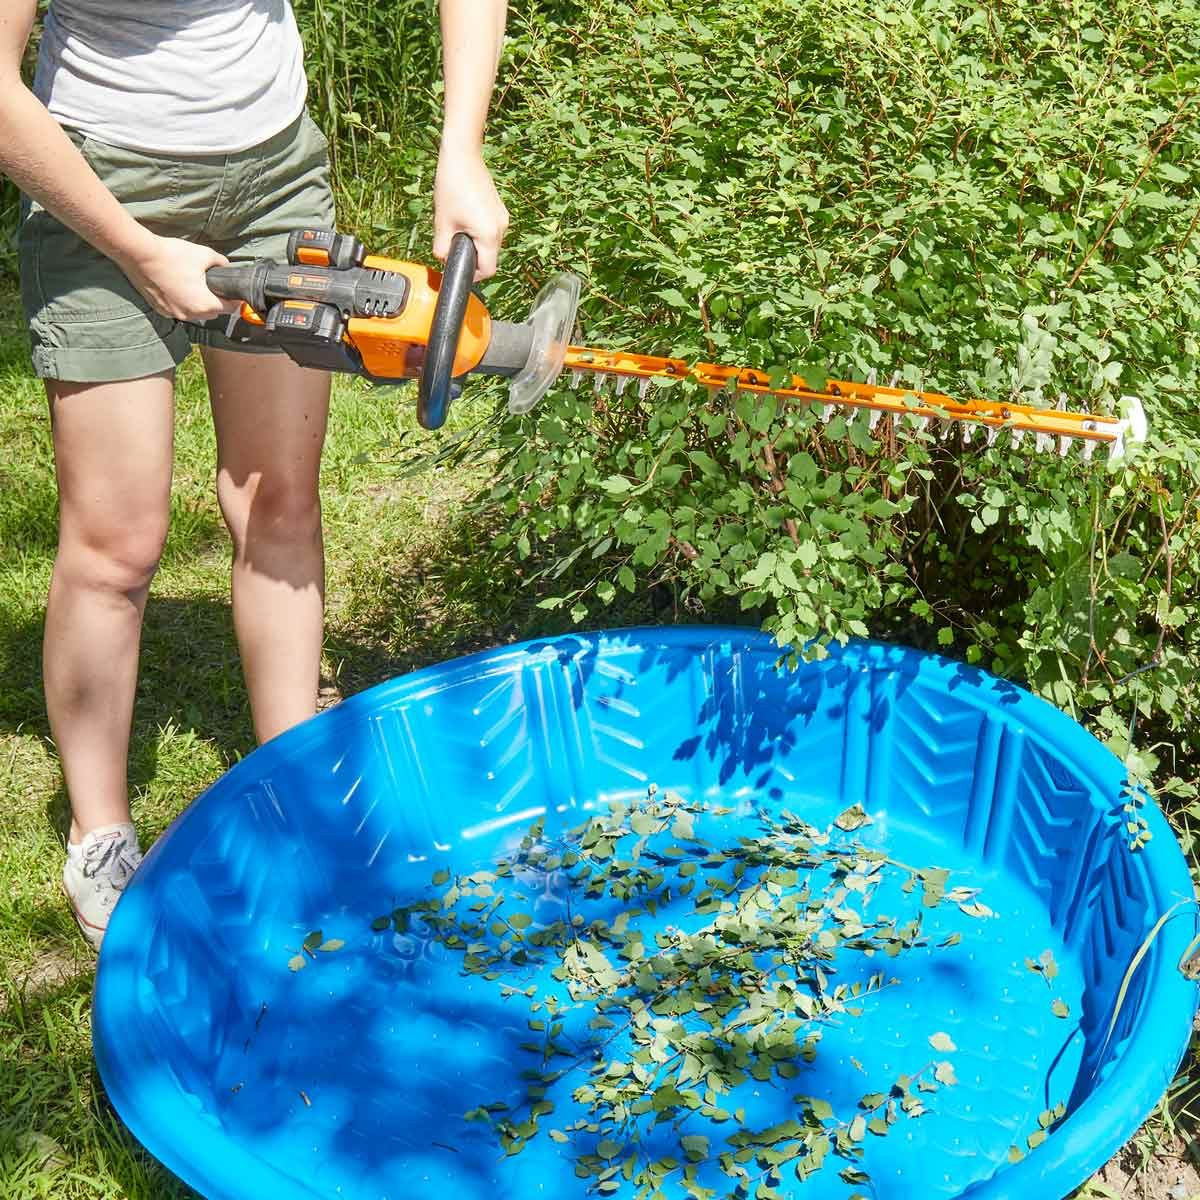 HH kiddie pool bush clippings